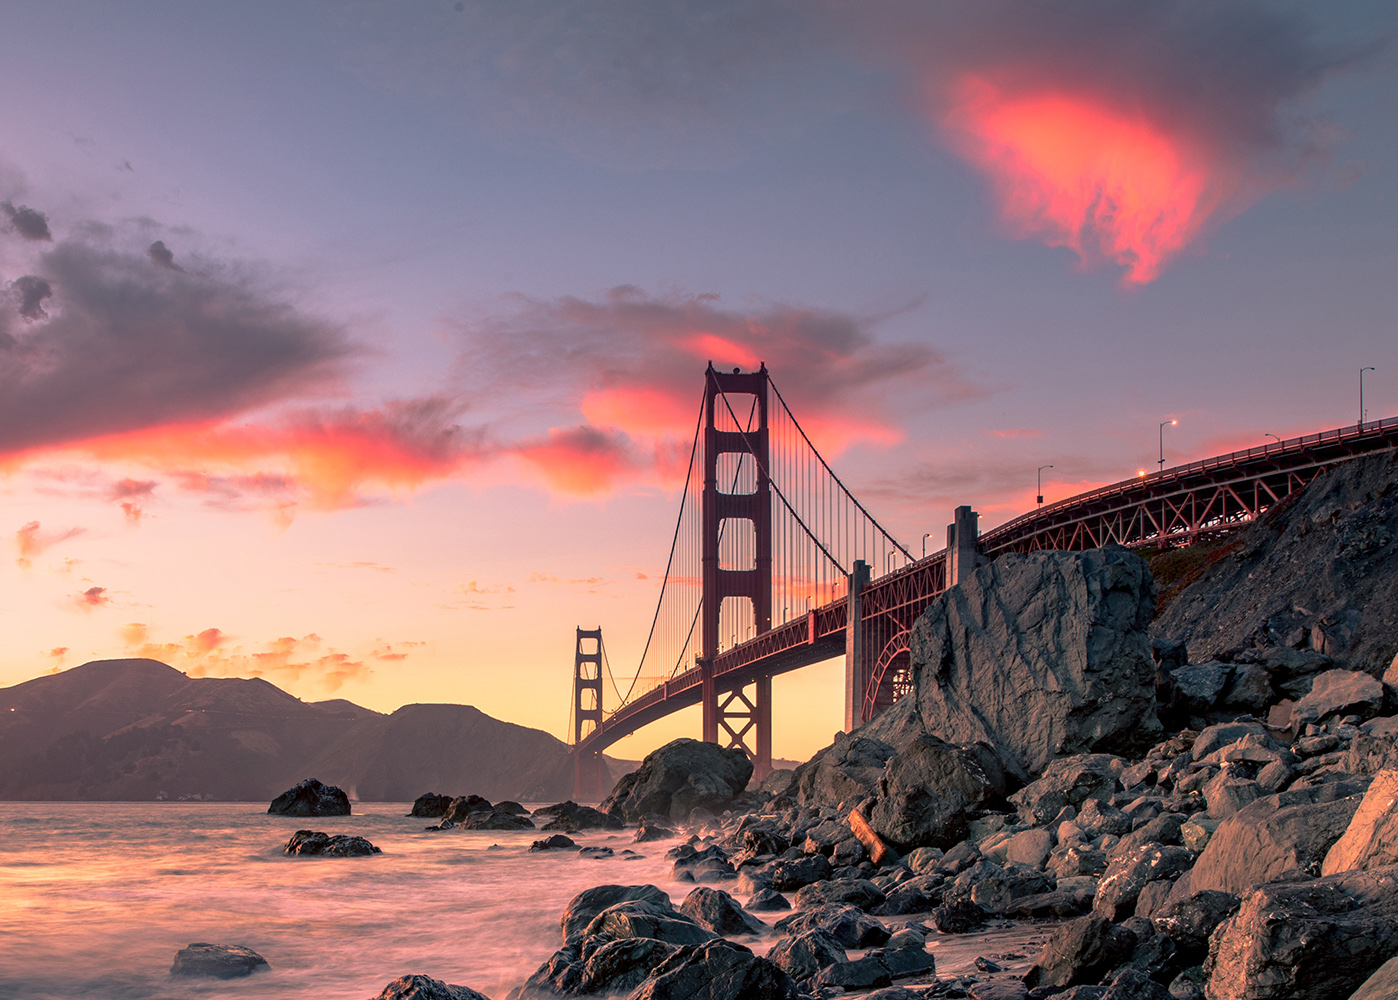 View of Golden Gate bridge from rocky shoreline